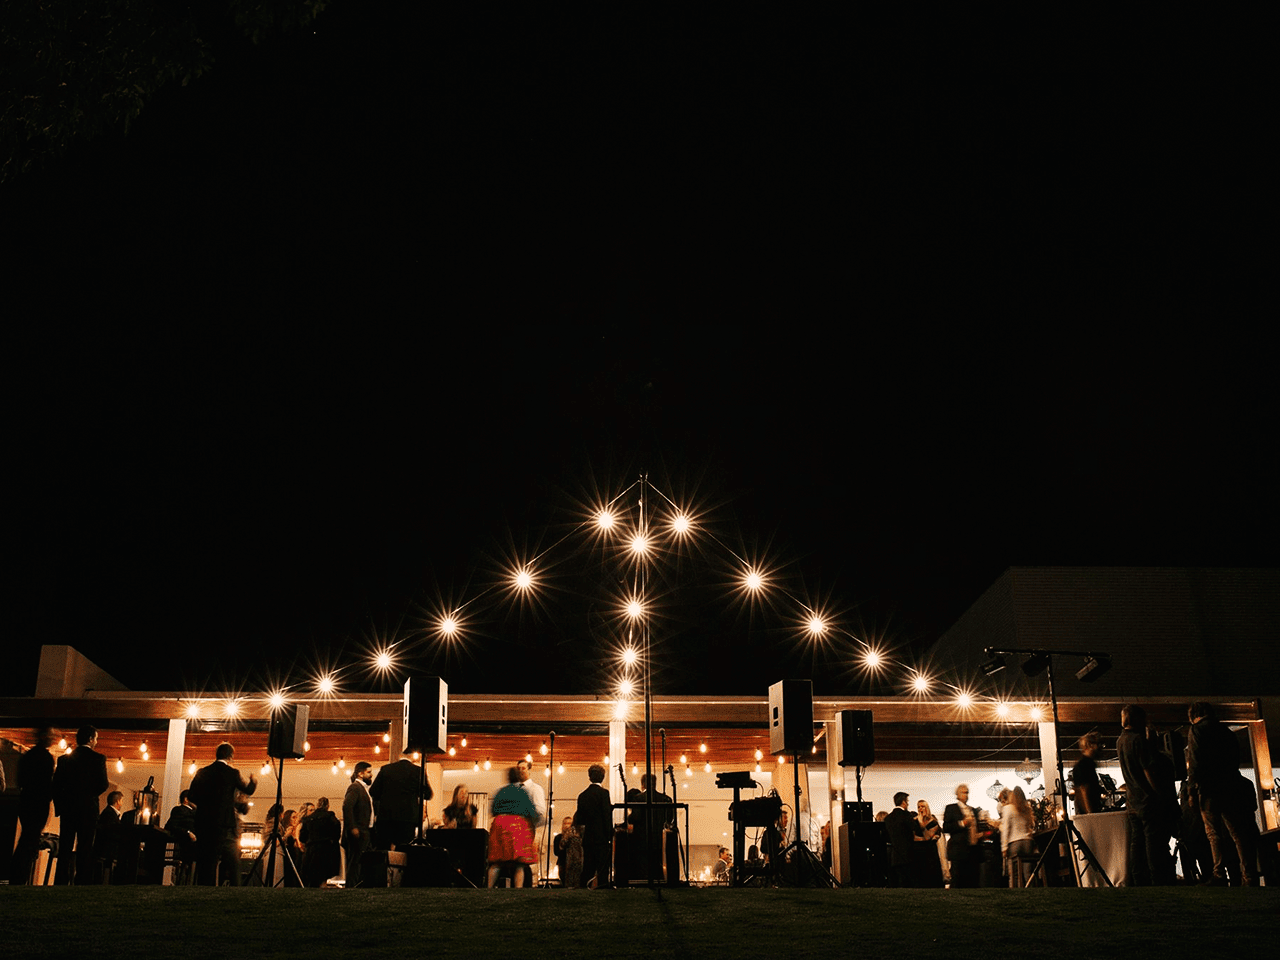 Guests Enjoying The Evening Outside The Function Room With String Lights